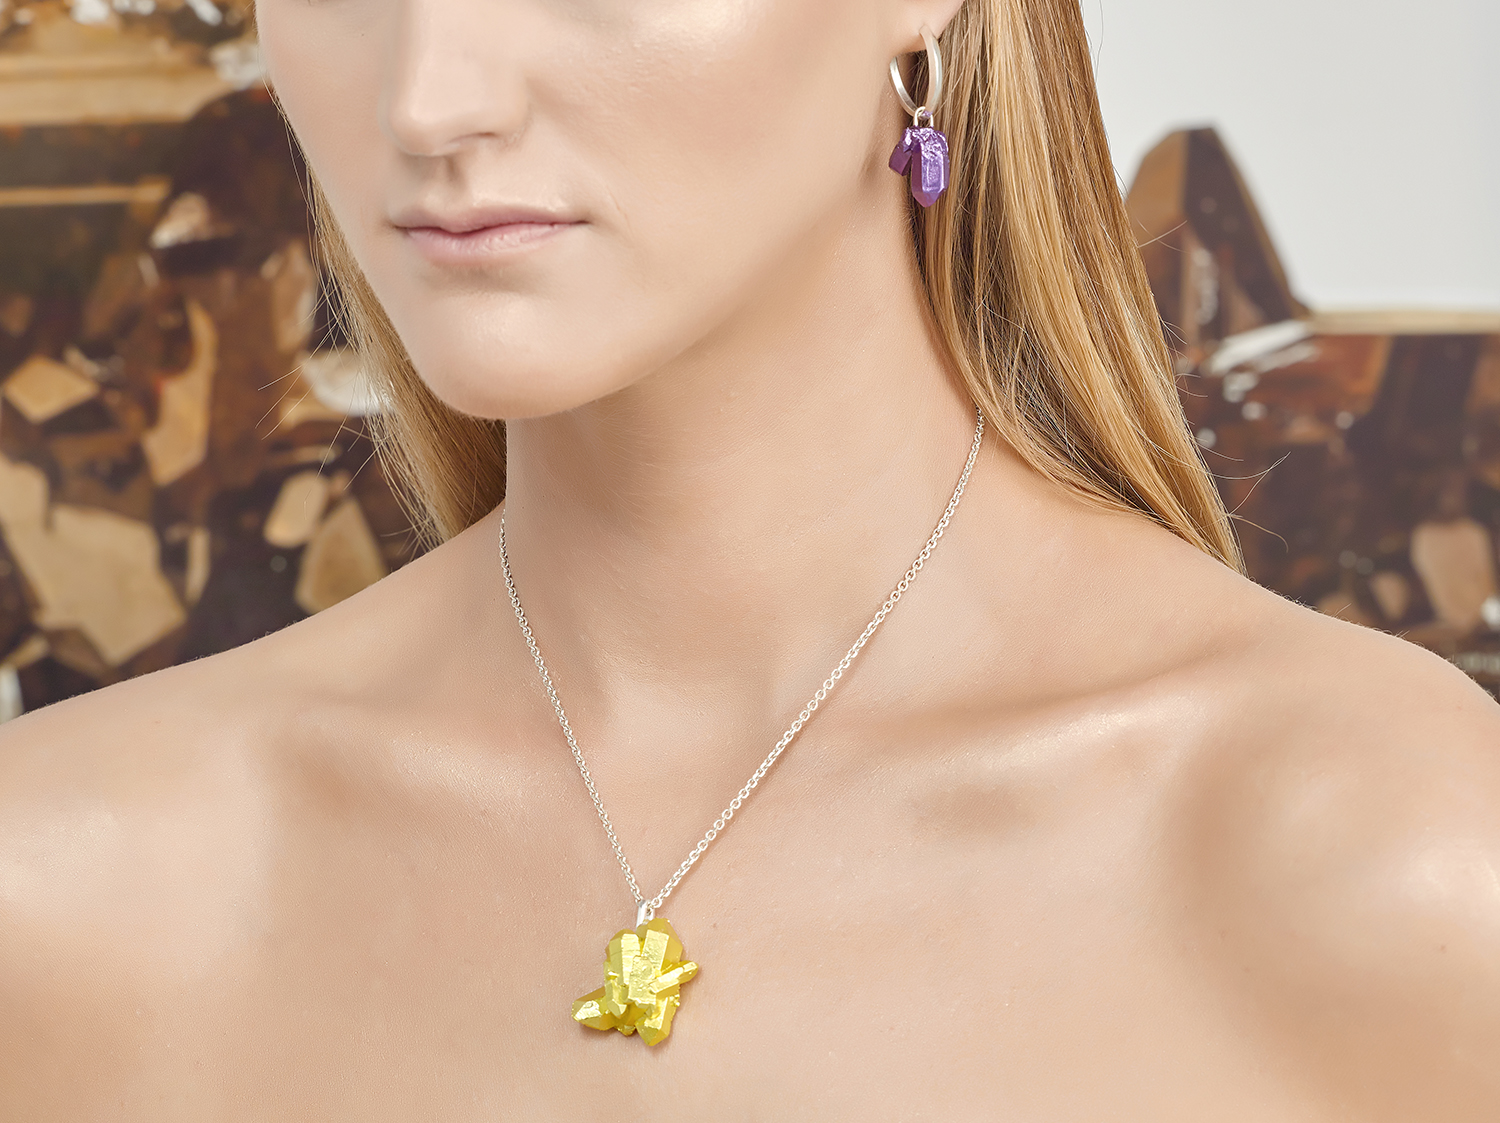 HotRocks Trigonal Pendant in Yellow and Hoop Earring in Purple Earrings Low Res.jpg